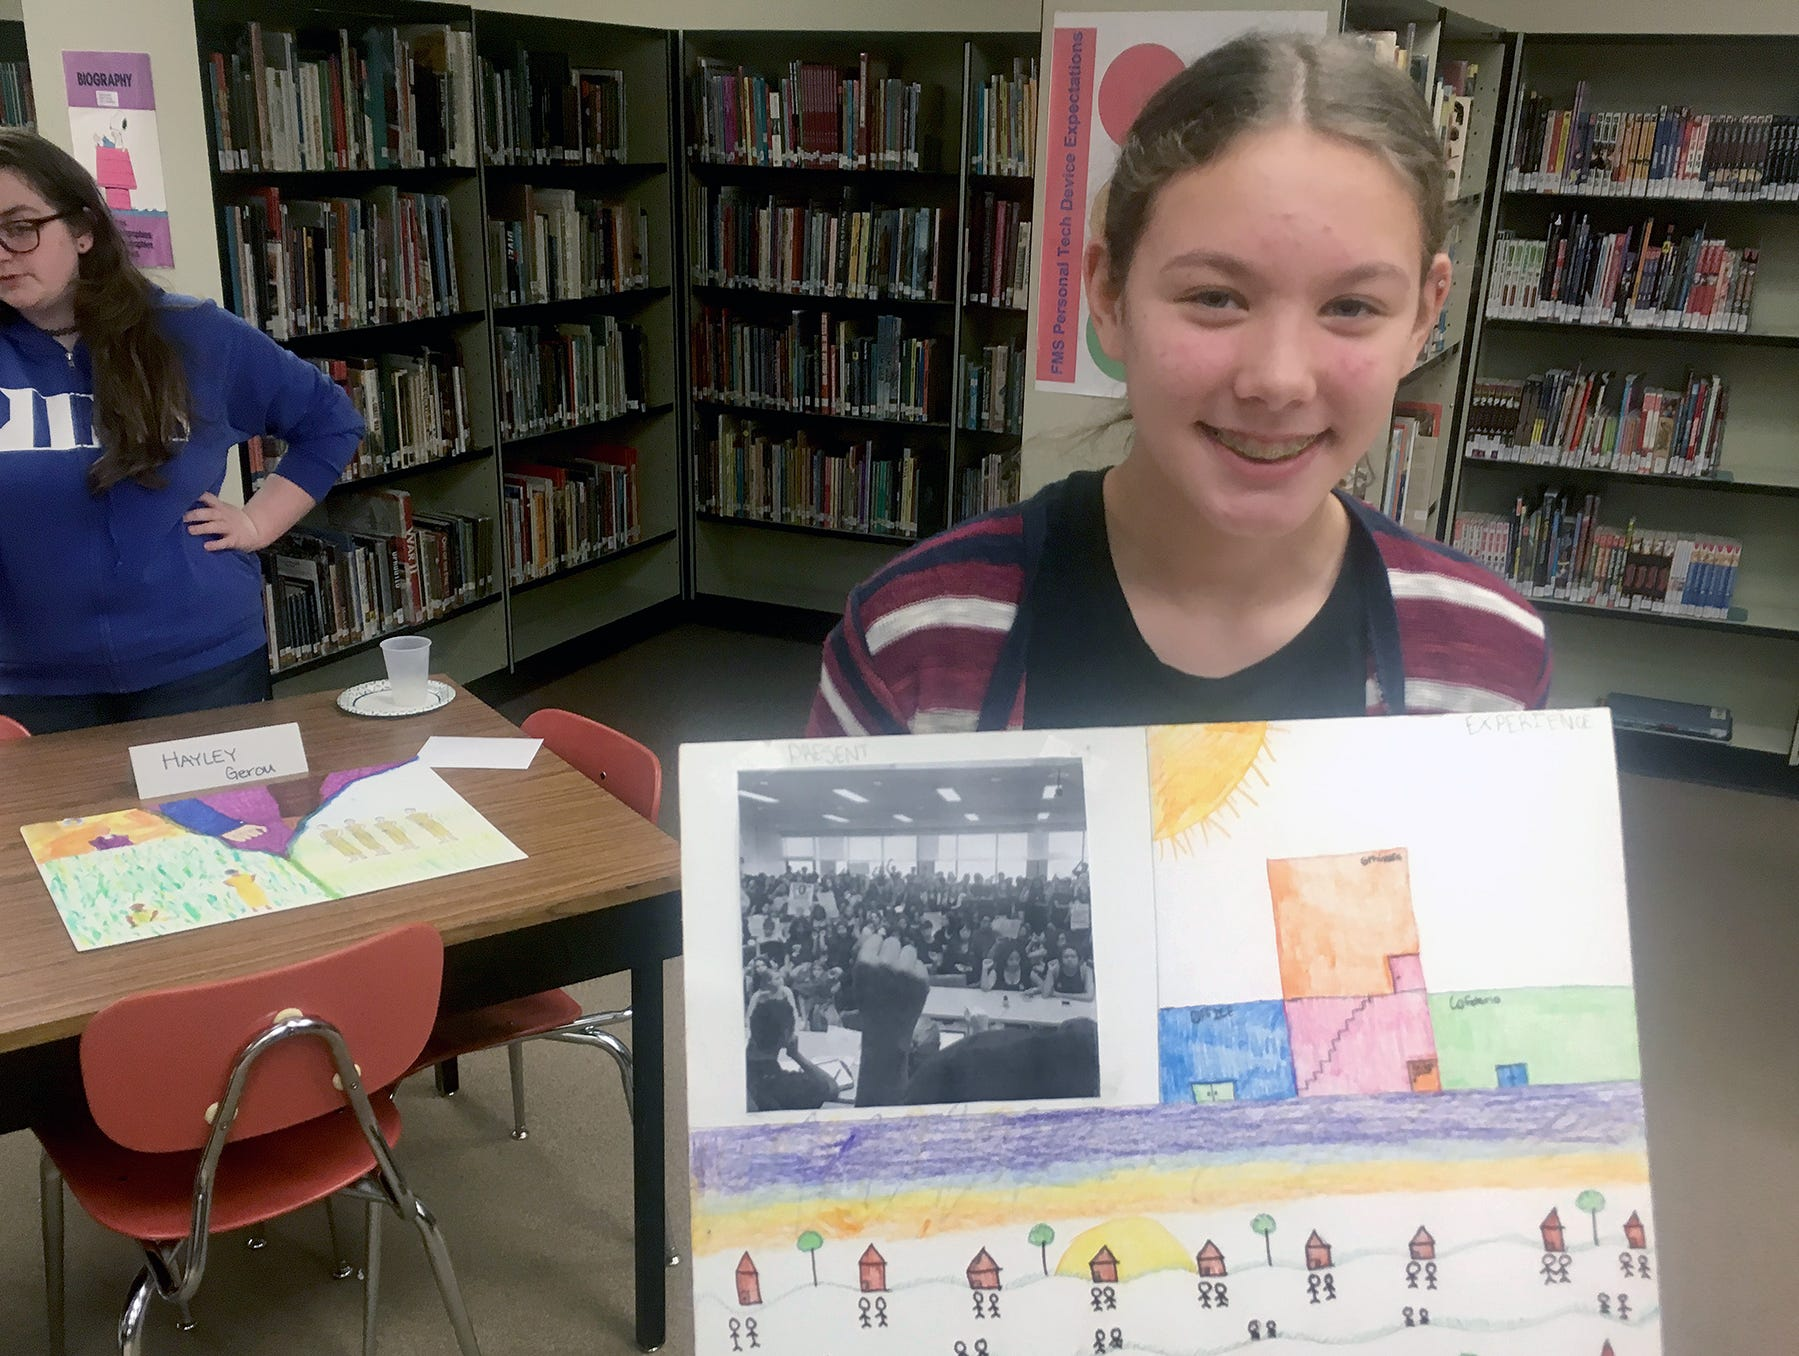 Fairview Middle School student Kamryn Merryman showed the Underground Railroad in her artwork for a project in Amy White's U.S. History class, focused on the history of racial discrimination. Merryman also depicted racism she observed in her elementary school.